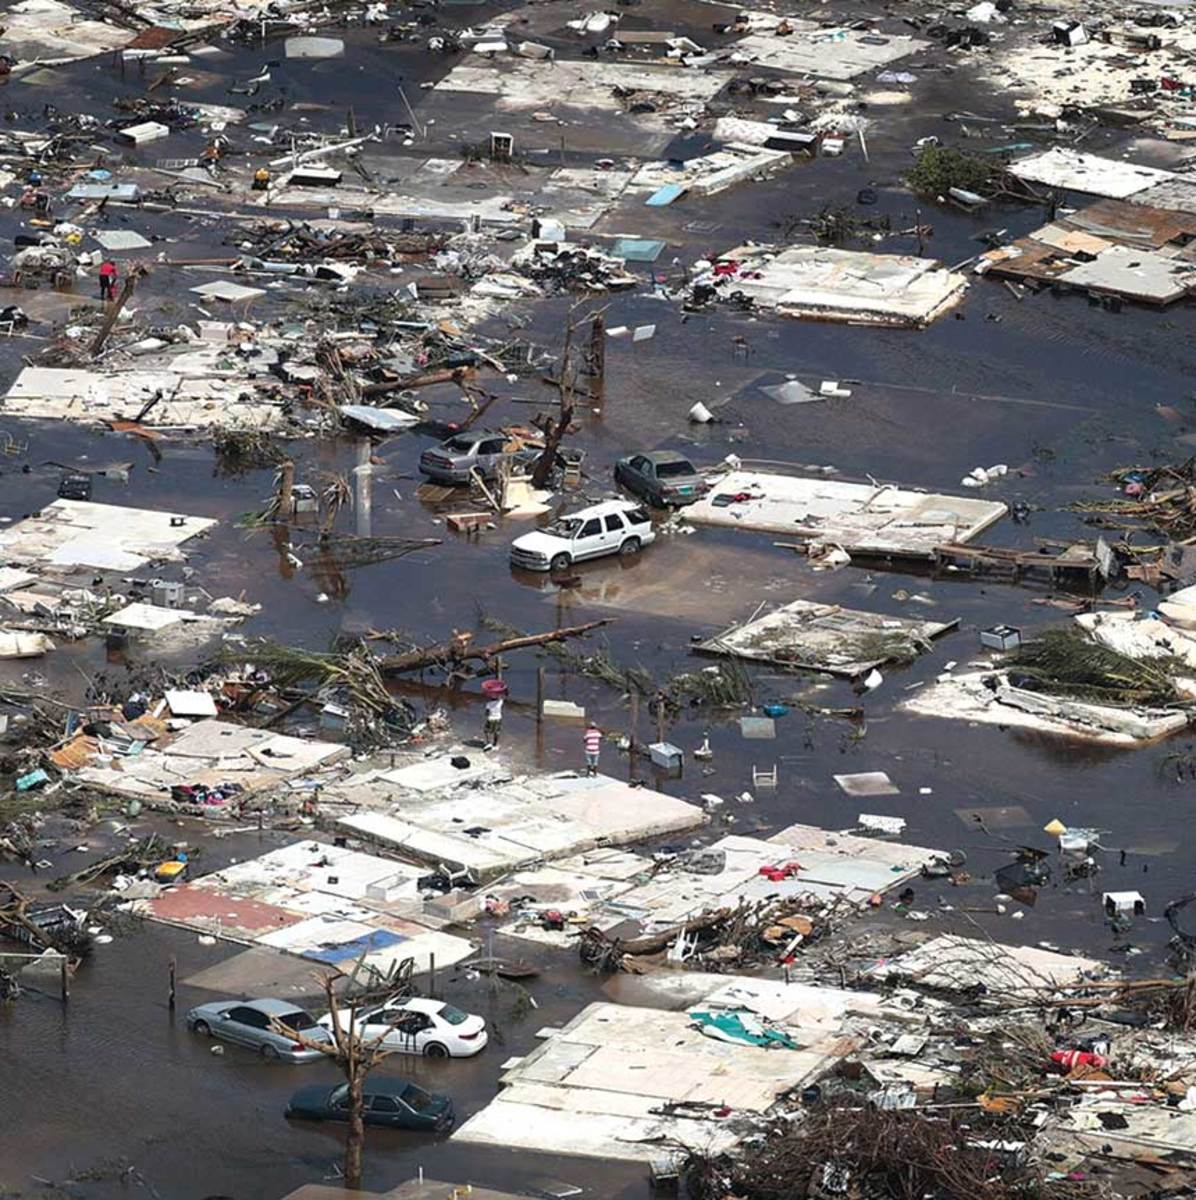 Marsh Harbour, Abaco, was one of the hardest-hit areas in the Bahamas. Dorian left 1.5 billion pounds of debris behind.  Little has changed since the hurricane.